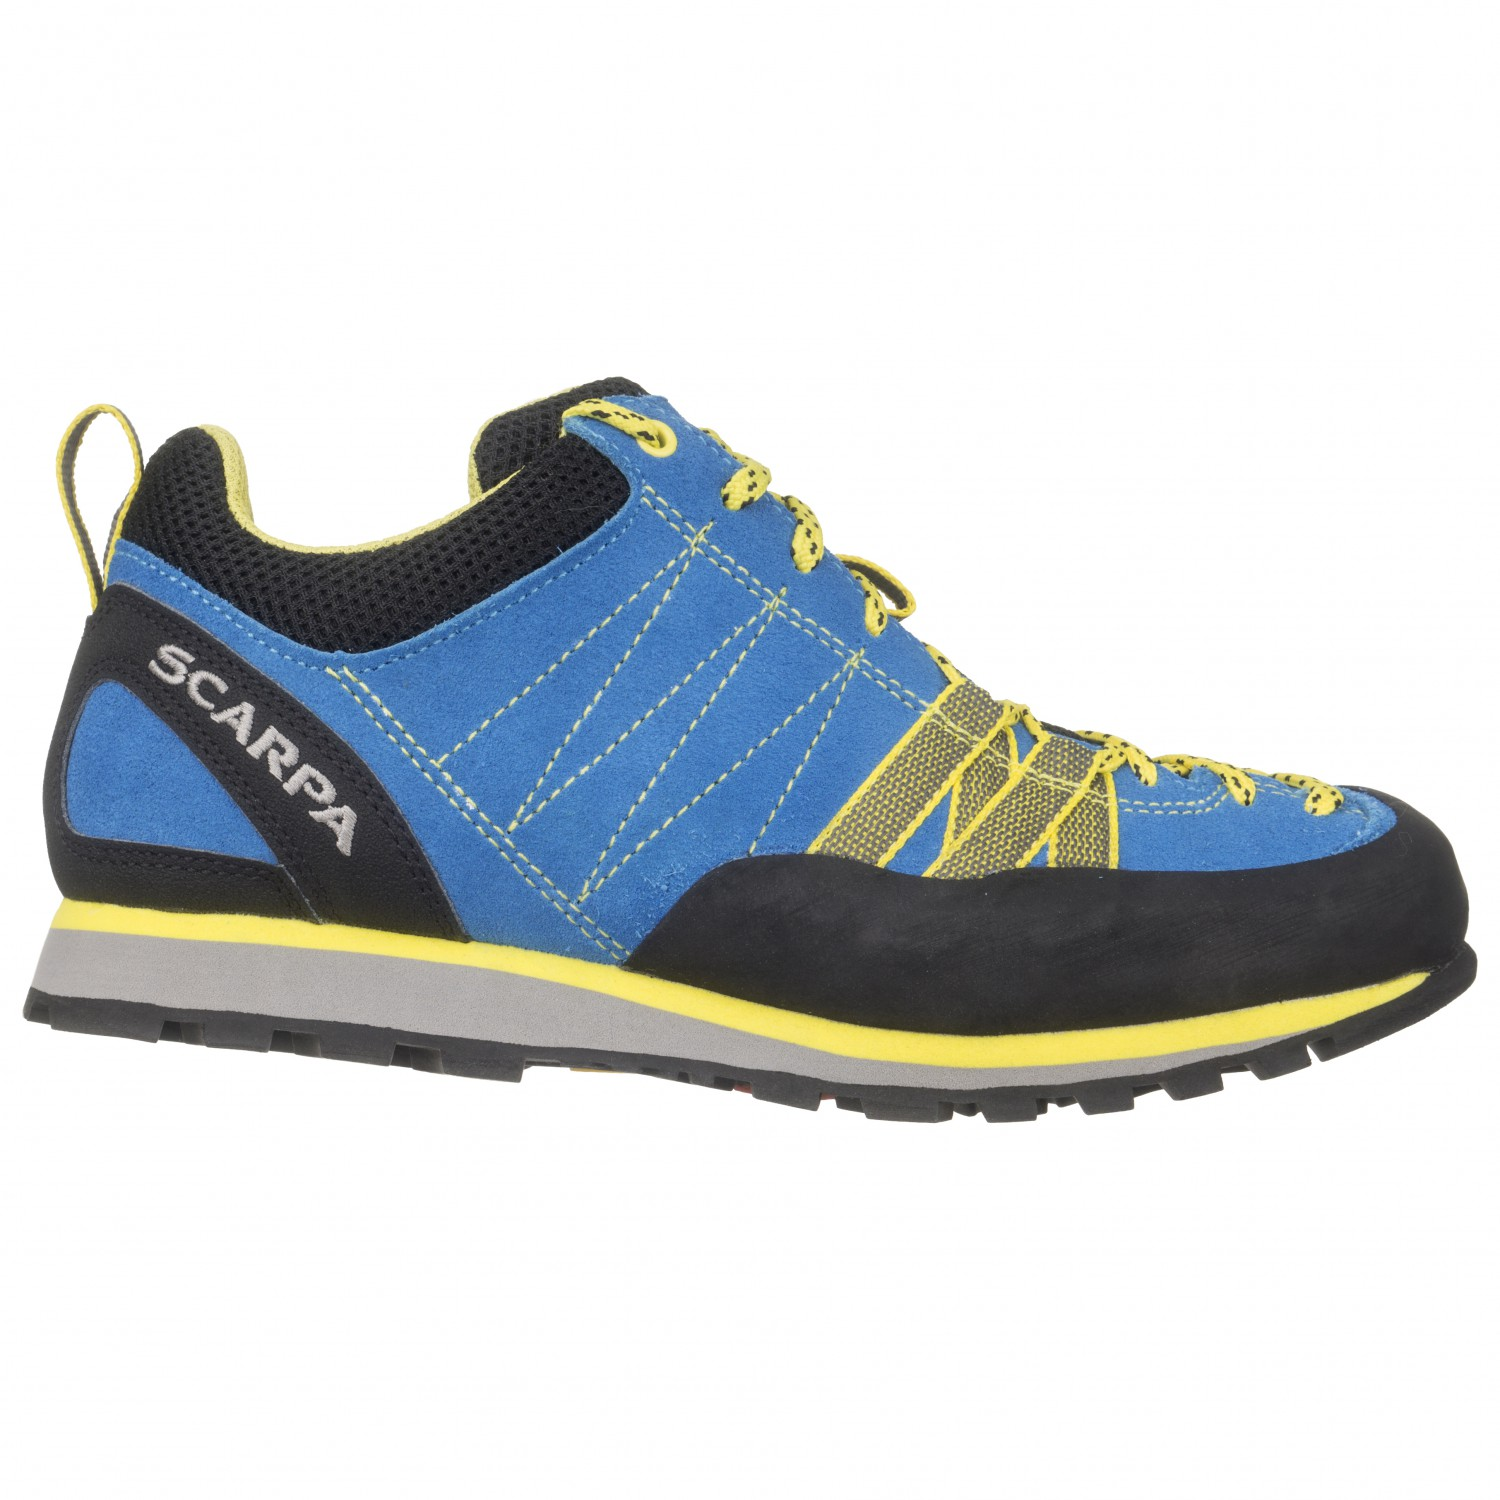 Scarpa Crux Approach Shoes Women